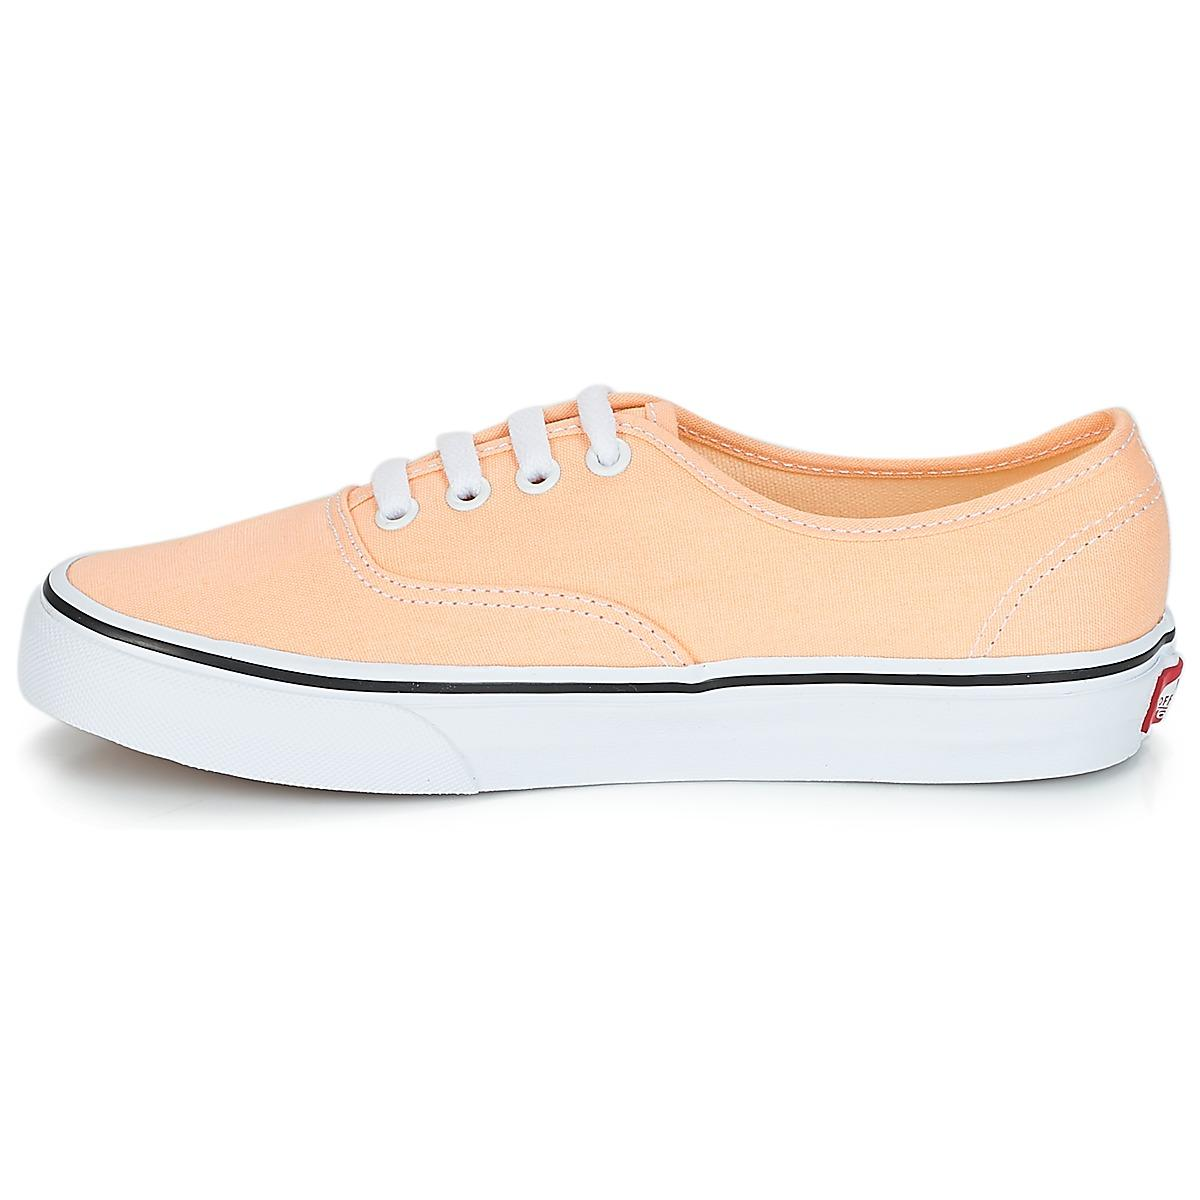 AUTHENTIC Chaussures Vans en coloris Neutre